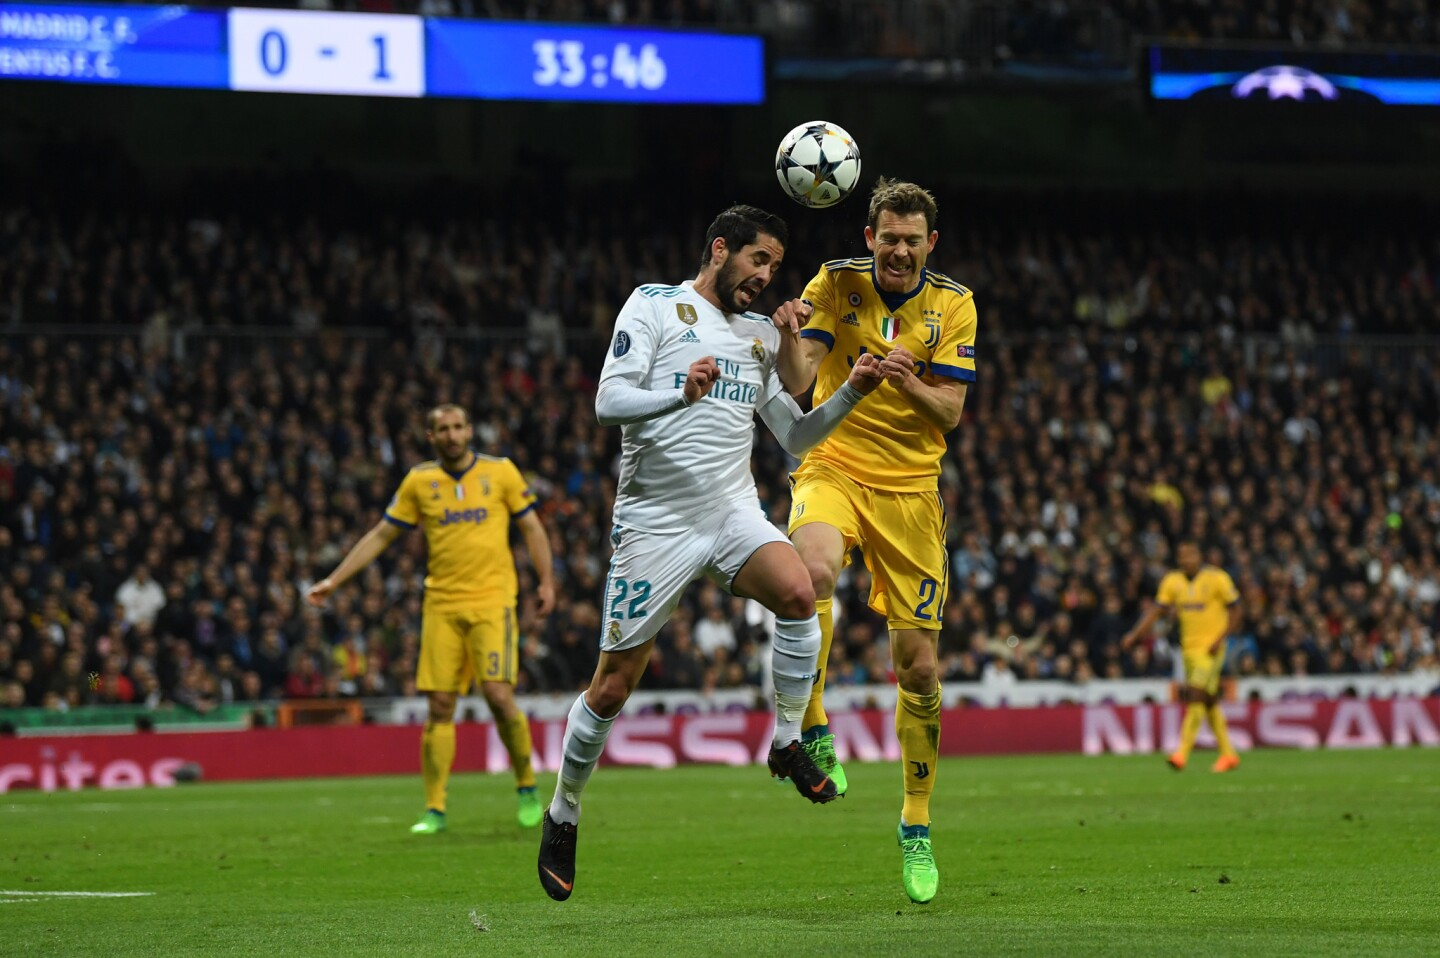 MADRID, SPAIN - APRIL 11: Isco of Real Madrid competes for a header with Stephan Lichtsteiner of Juventus during the UEFA Champions League Quarter Final Second Leg match between Real Madrid and Juventus at Estadio Santiago Bernabeu on April 11, 2018 in Madrid, Spain. (Photo by David Ramos/Getty Images) ** OUTS - ELSENT, FPG, CM - OUTS * NM, PH, VA if sourced by CT, LA or MoD **